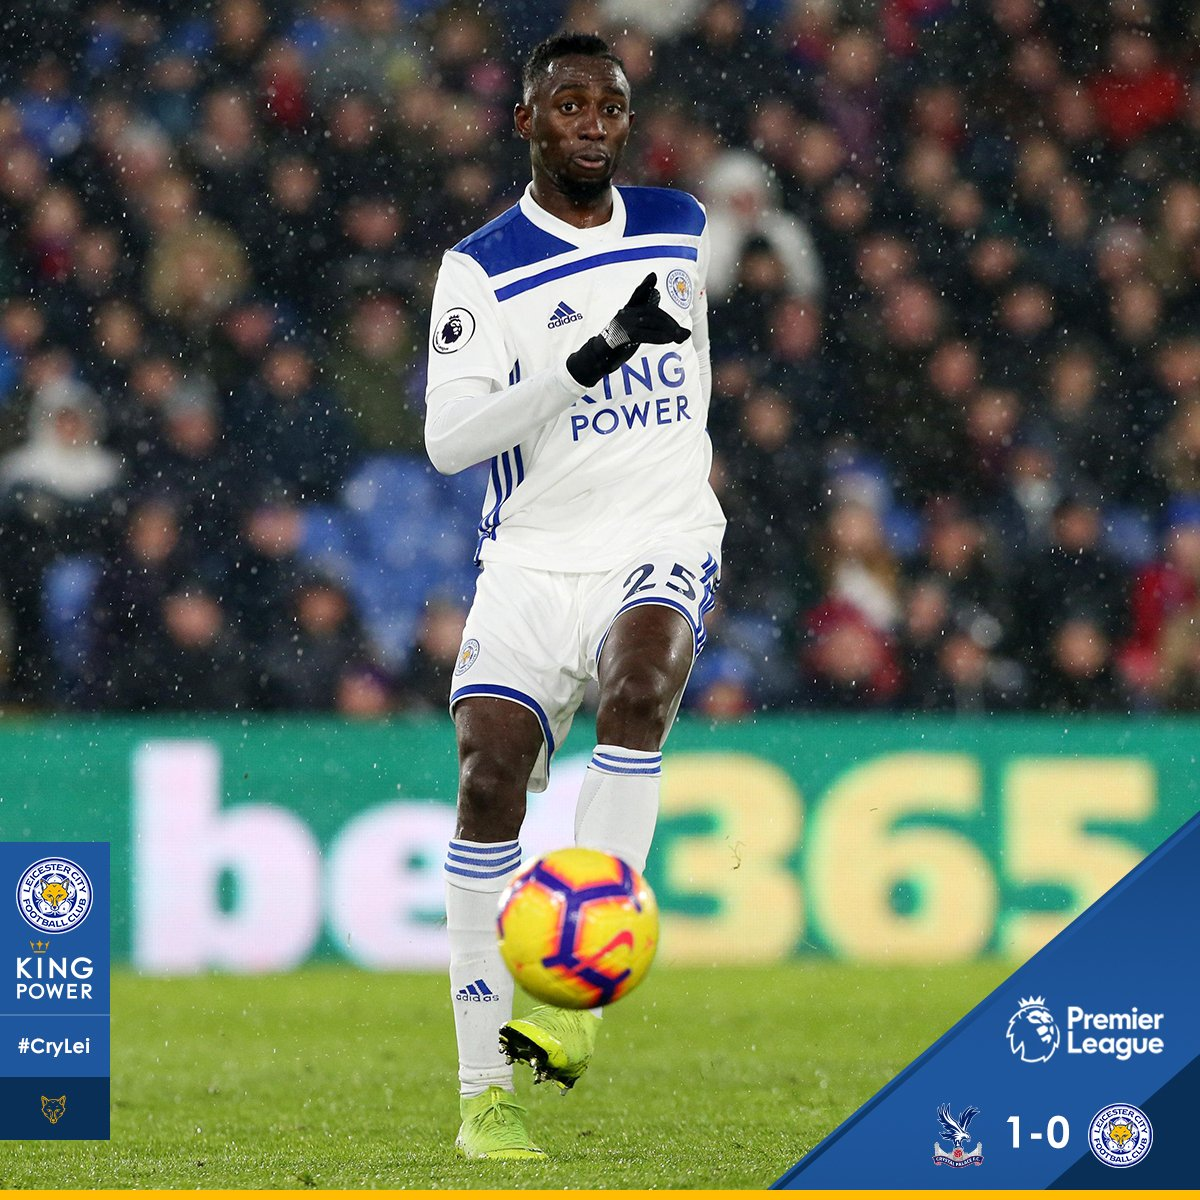 EPL WRAP: Ndidi Makes 16th Start In Leicester's Loss; Iheanacho, Success Play As Sub